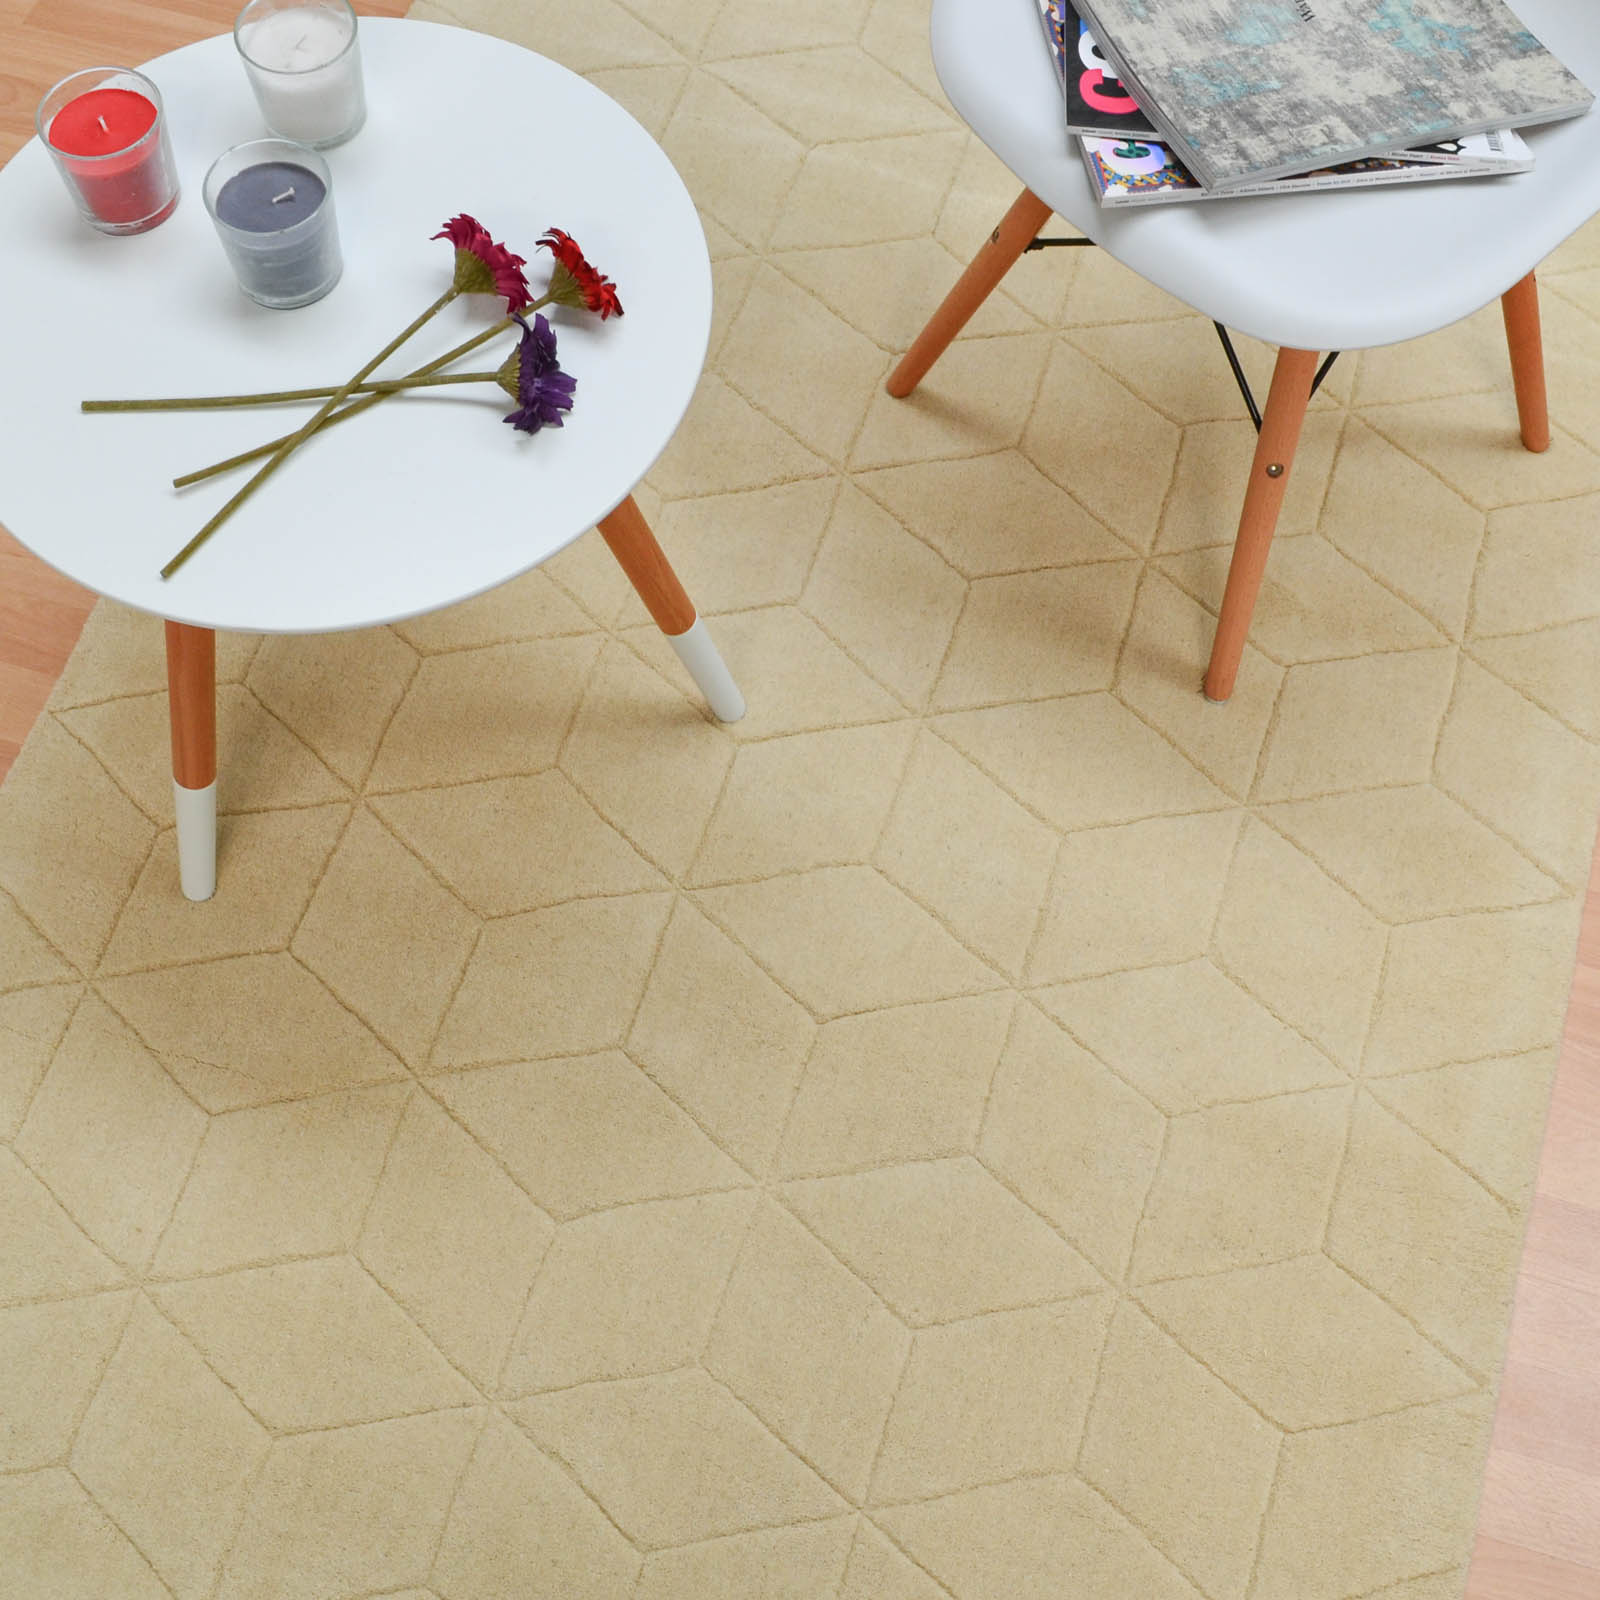 Illusory Rugs ILU01 in Pale Yellow